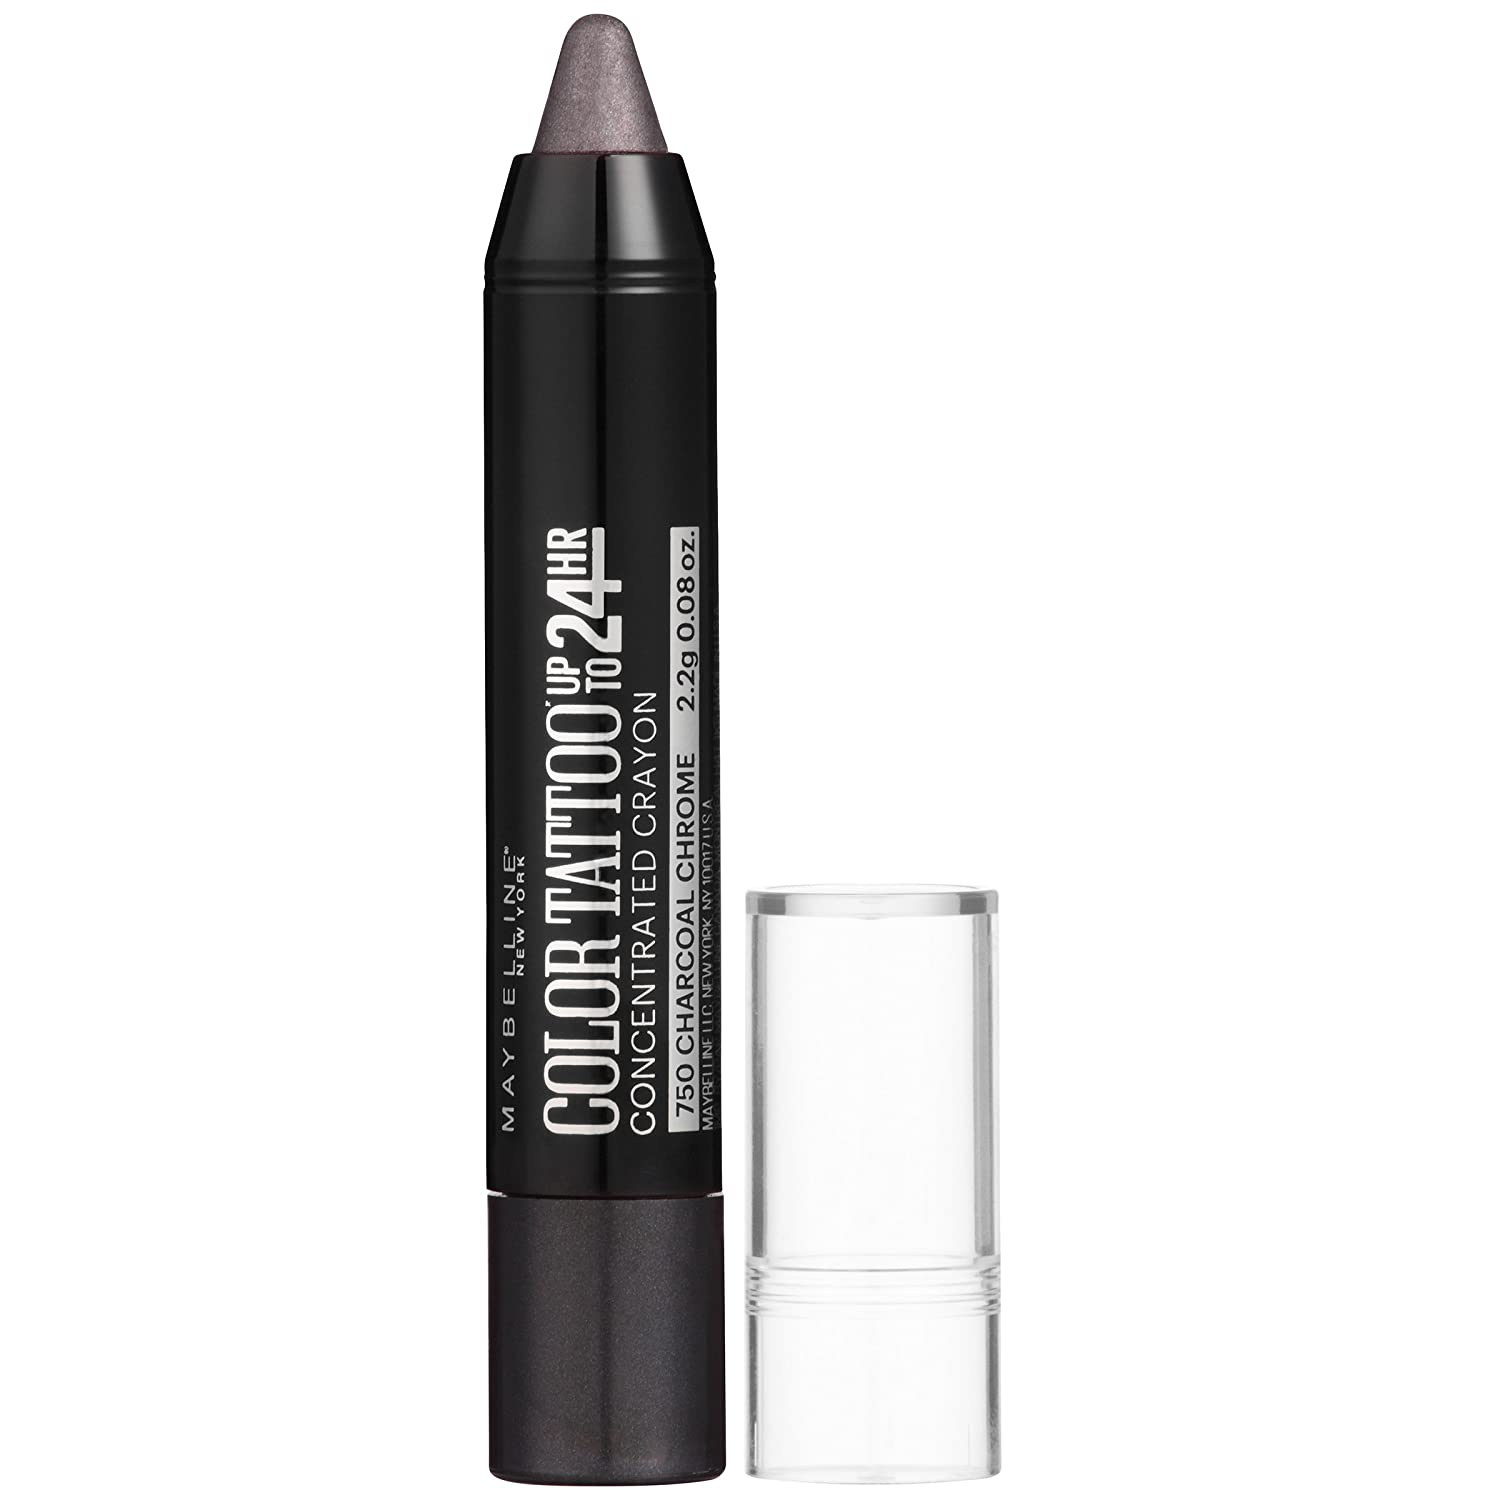 Maybelline New York Eyestudio Color Tattoo Concentrated Crayon Eye Color, Charcoal Chrome, 0.08 Ounce